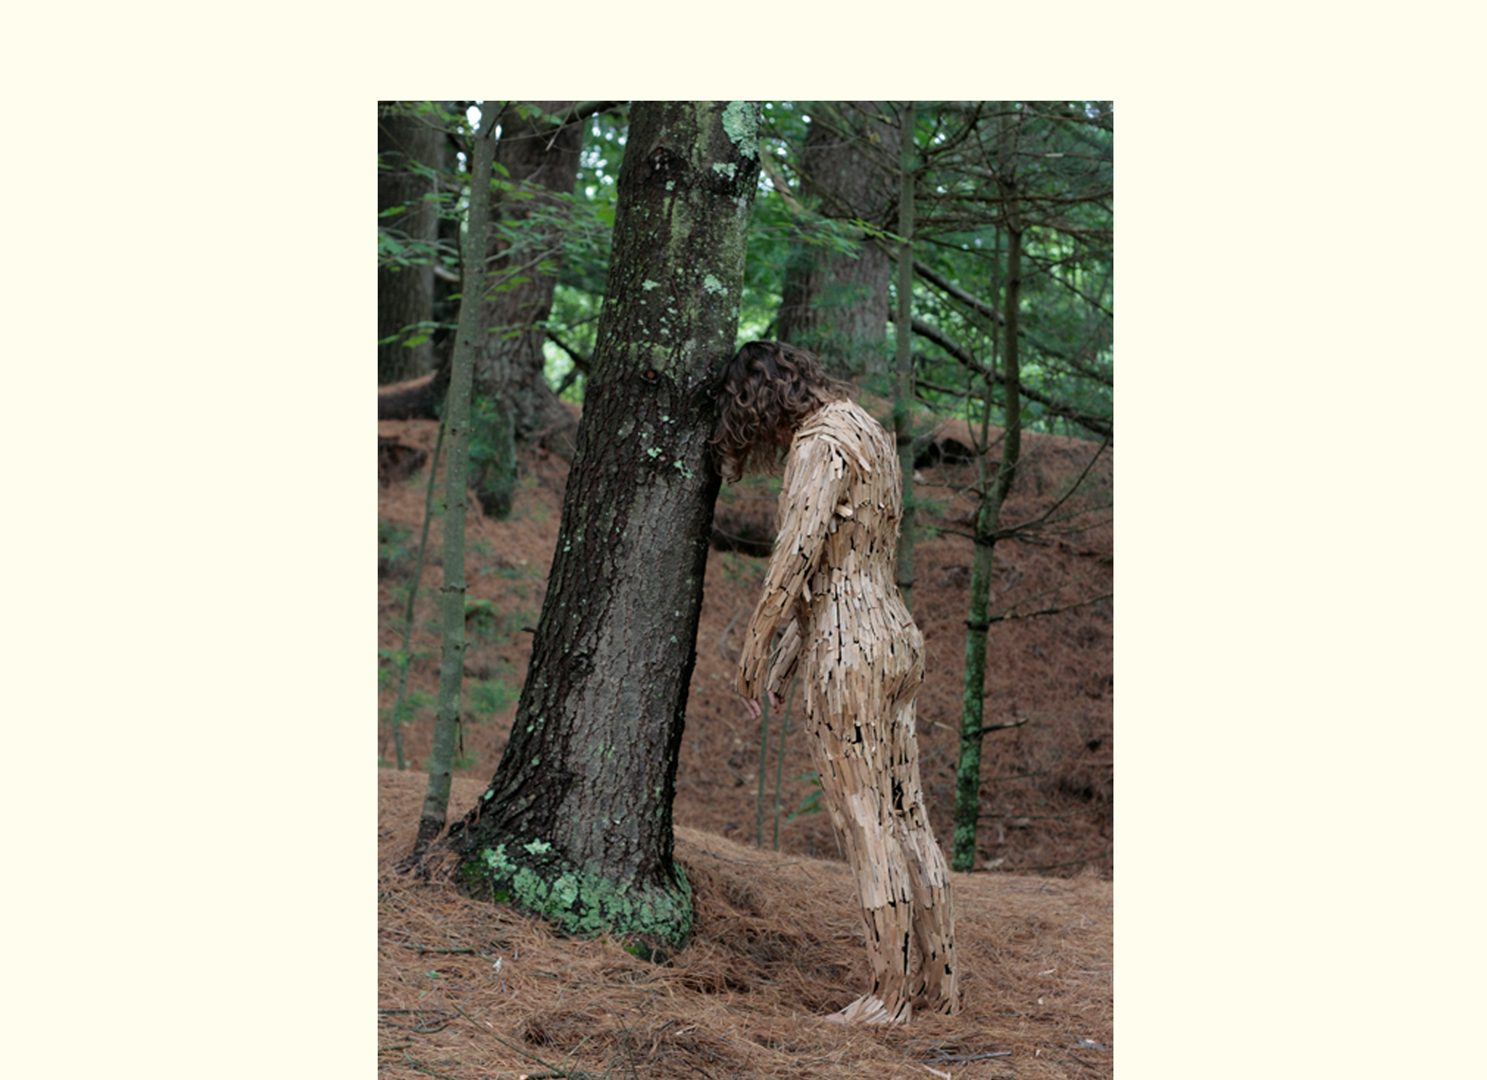 Linda Molenaar, Tree Pose, 2011